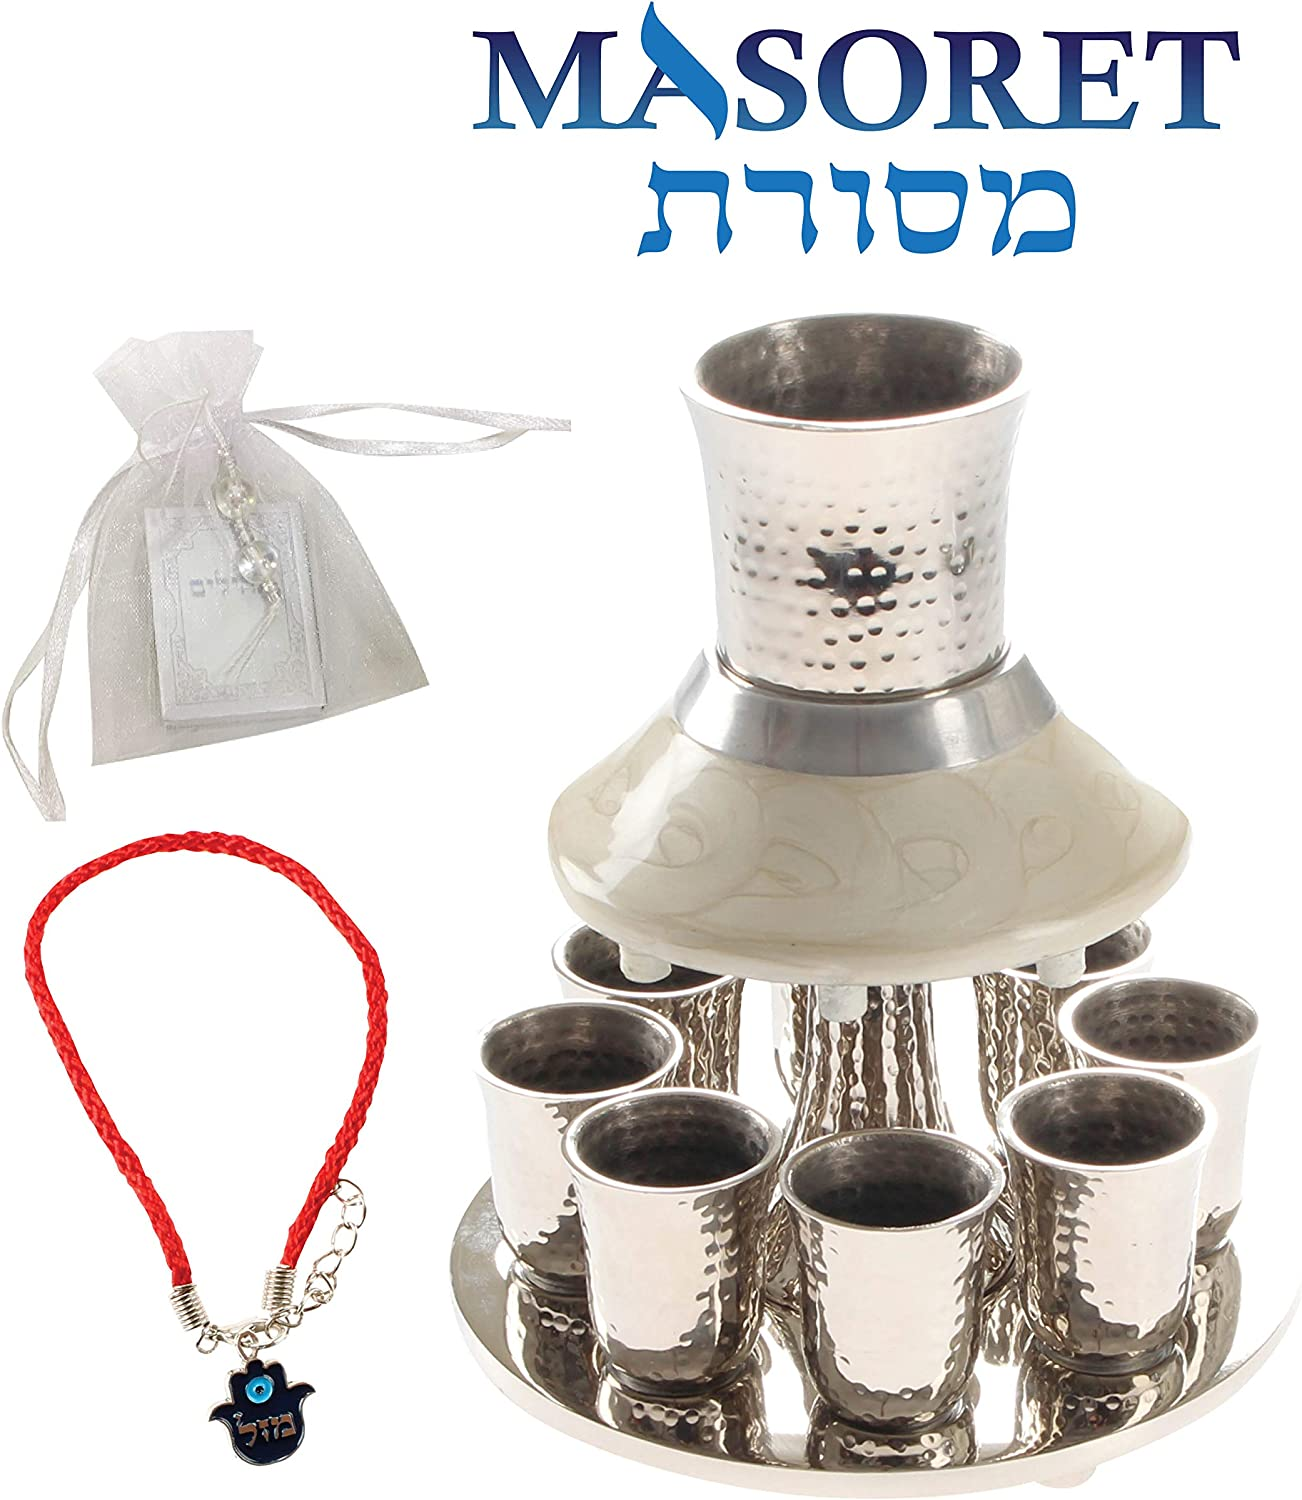 5-Inch Drinking Cup and Saucer for Wine Blessings at Shabbat or Jewish Celebrations plus Mini Tehillim Book KIDDUSH CUP SET ALUMINUM